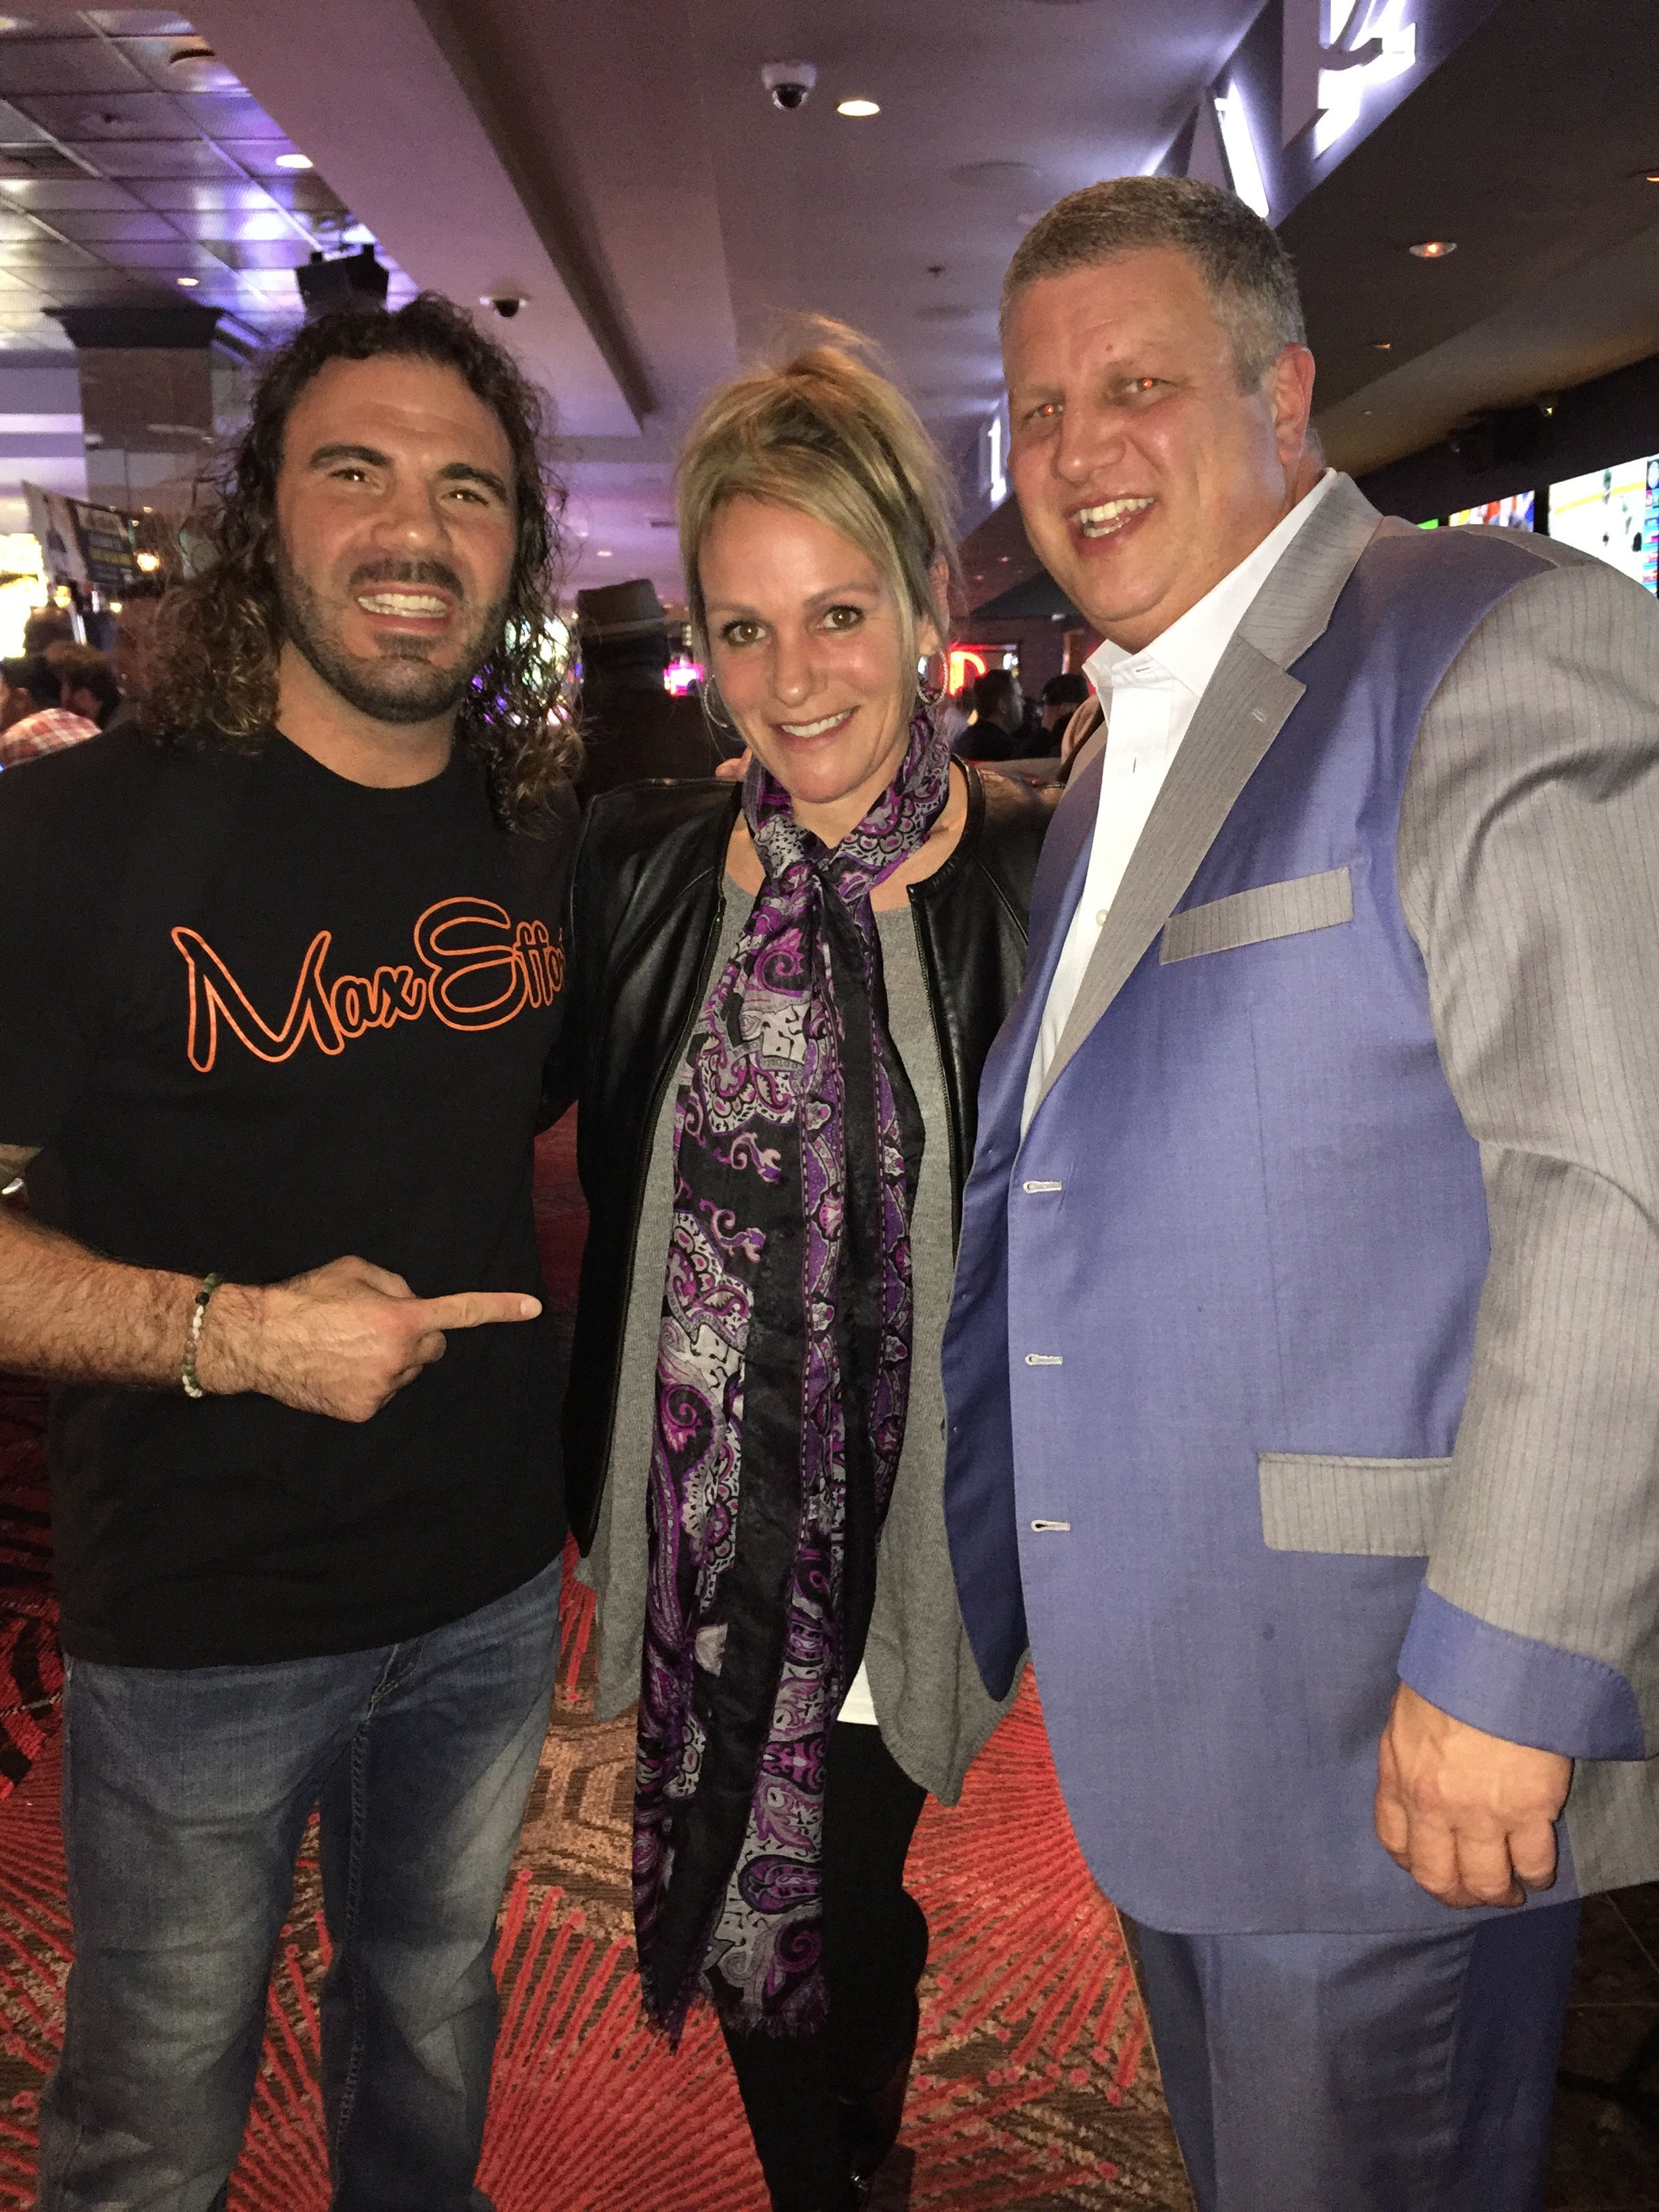 Greg Rikaart Nude pertaining to ufc fighter, clay guida, with d casino hotel las vegas owner